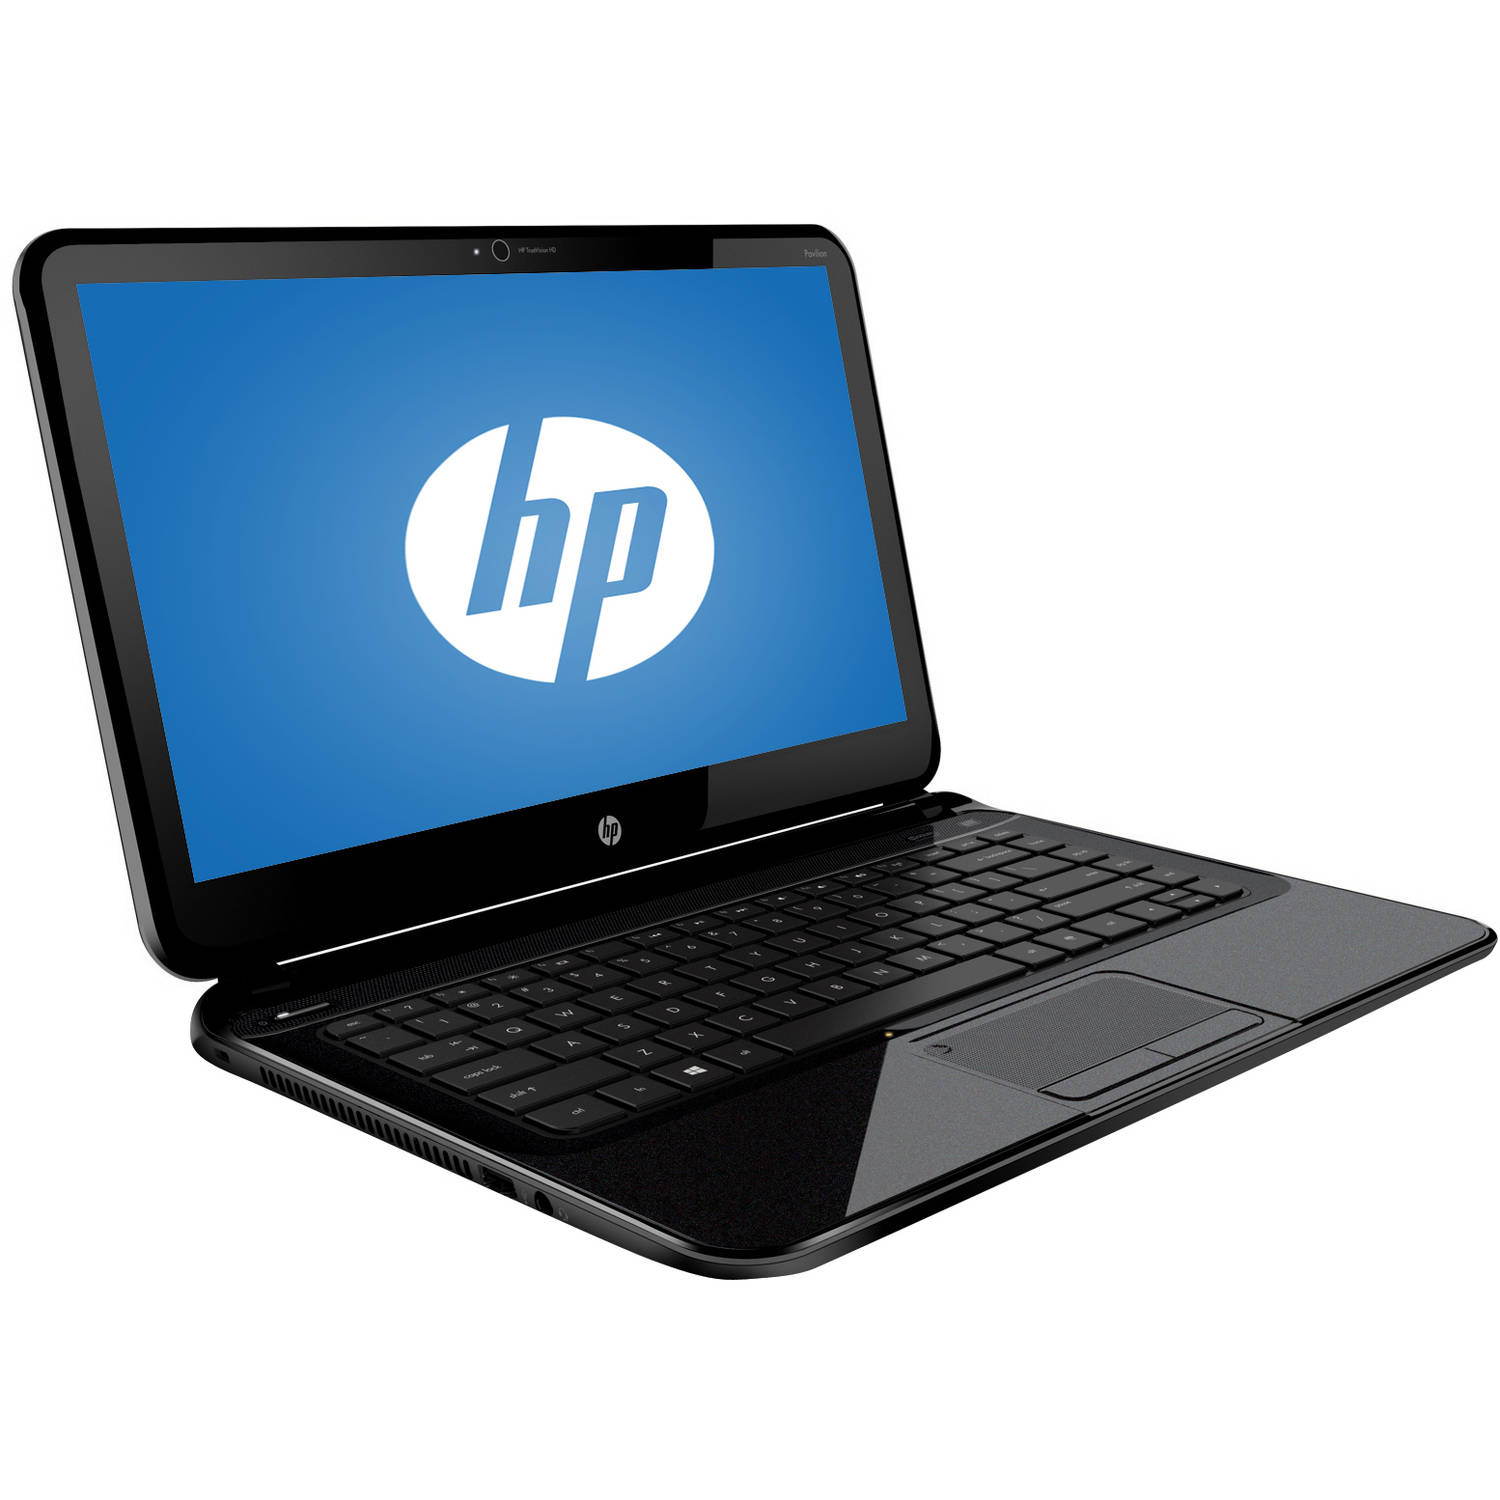 "Refurbished HP Sparkling Black 14"" Pavilion TouchSmart 14-b109wm Laptop PC with Intel Celeron B877 Processor, 4GB Memory, 500GB Hard Drive, touch screen and Windows 8"